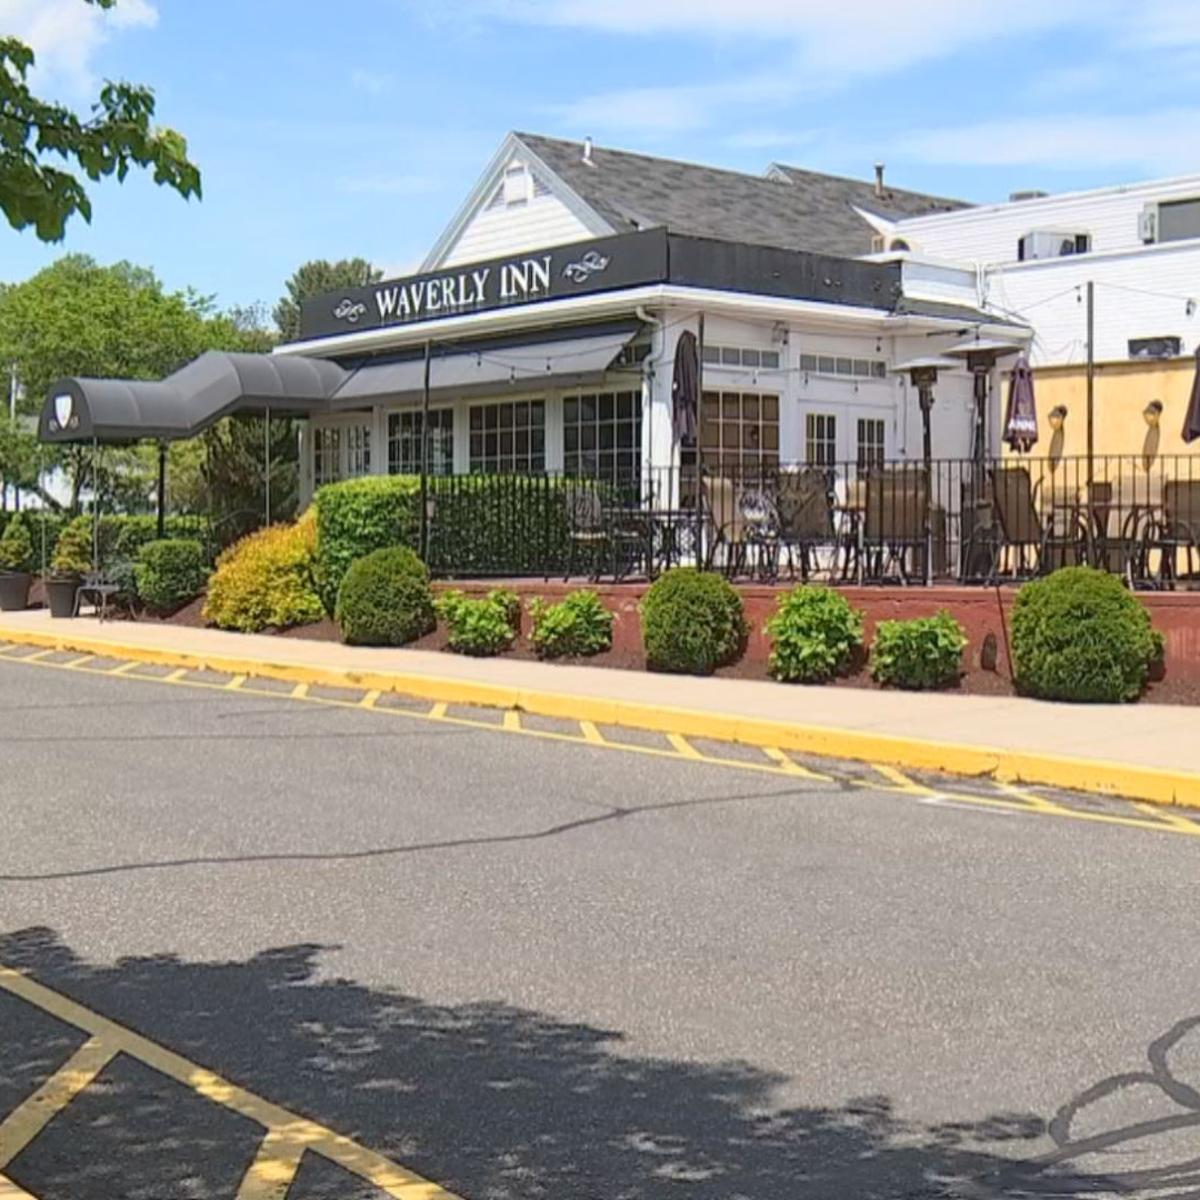 Popular Waverly Inn in Cheshire closes its doors | News